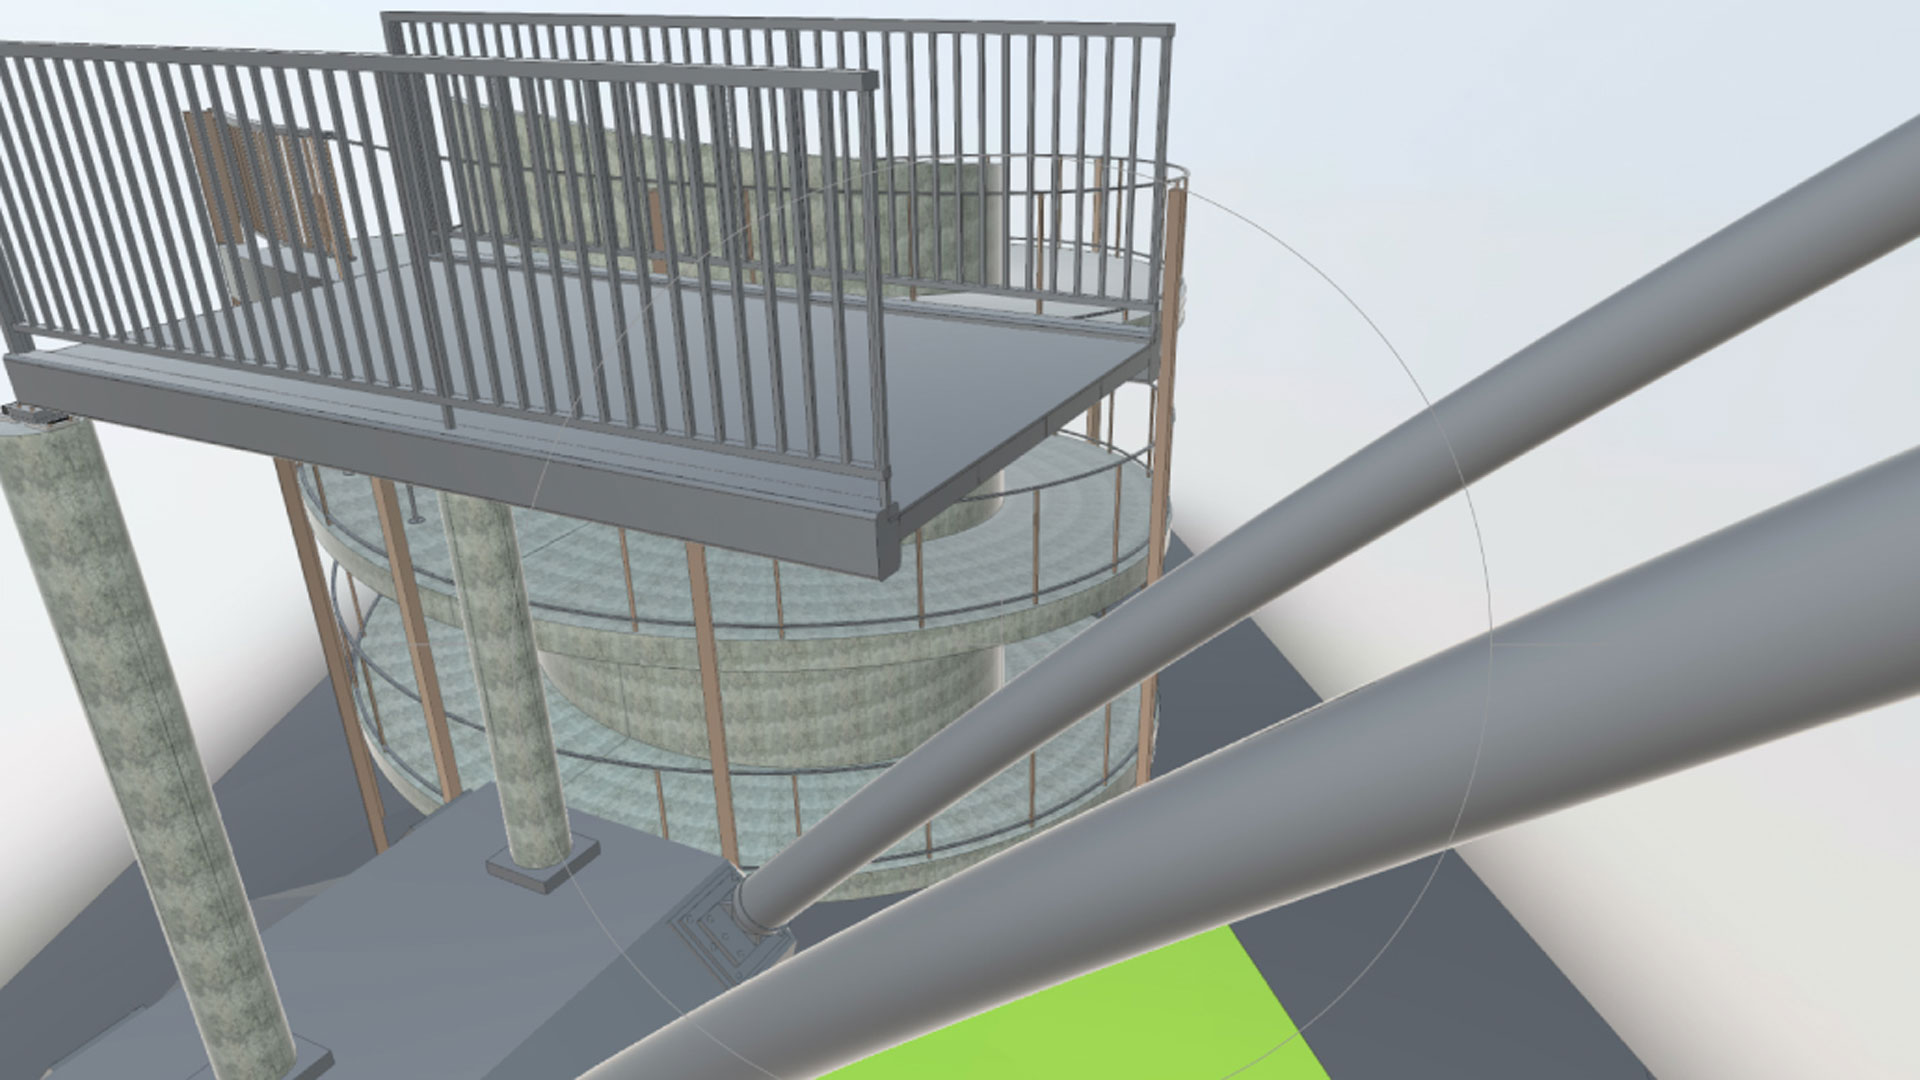 Laser survey and HD 3D Model For Footbridge Engineering Project